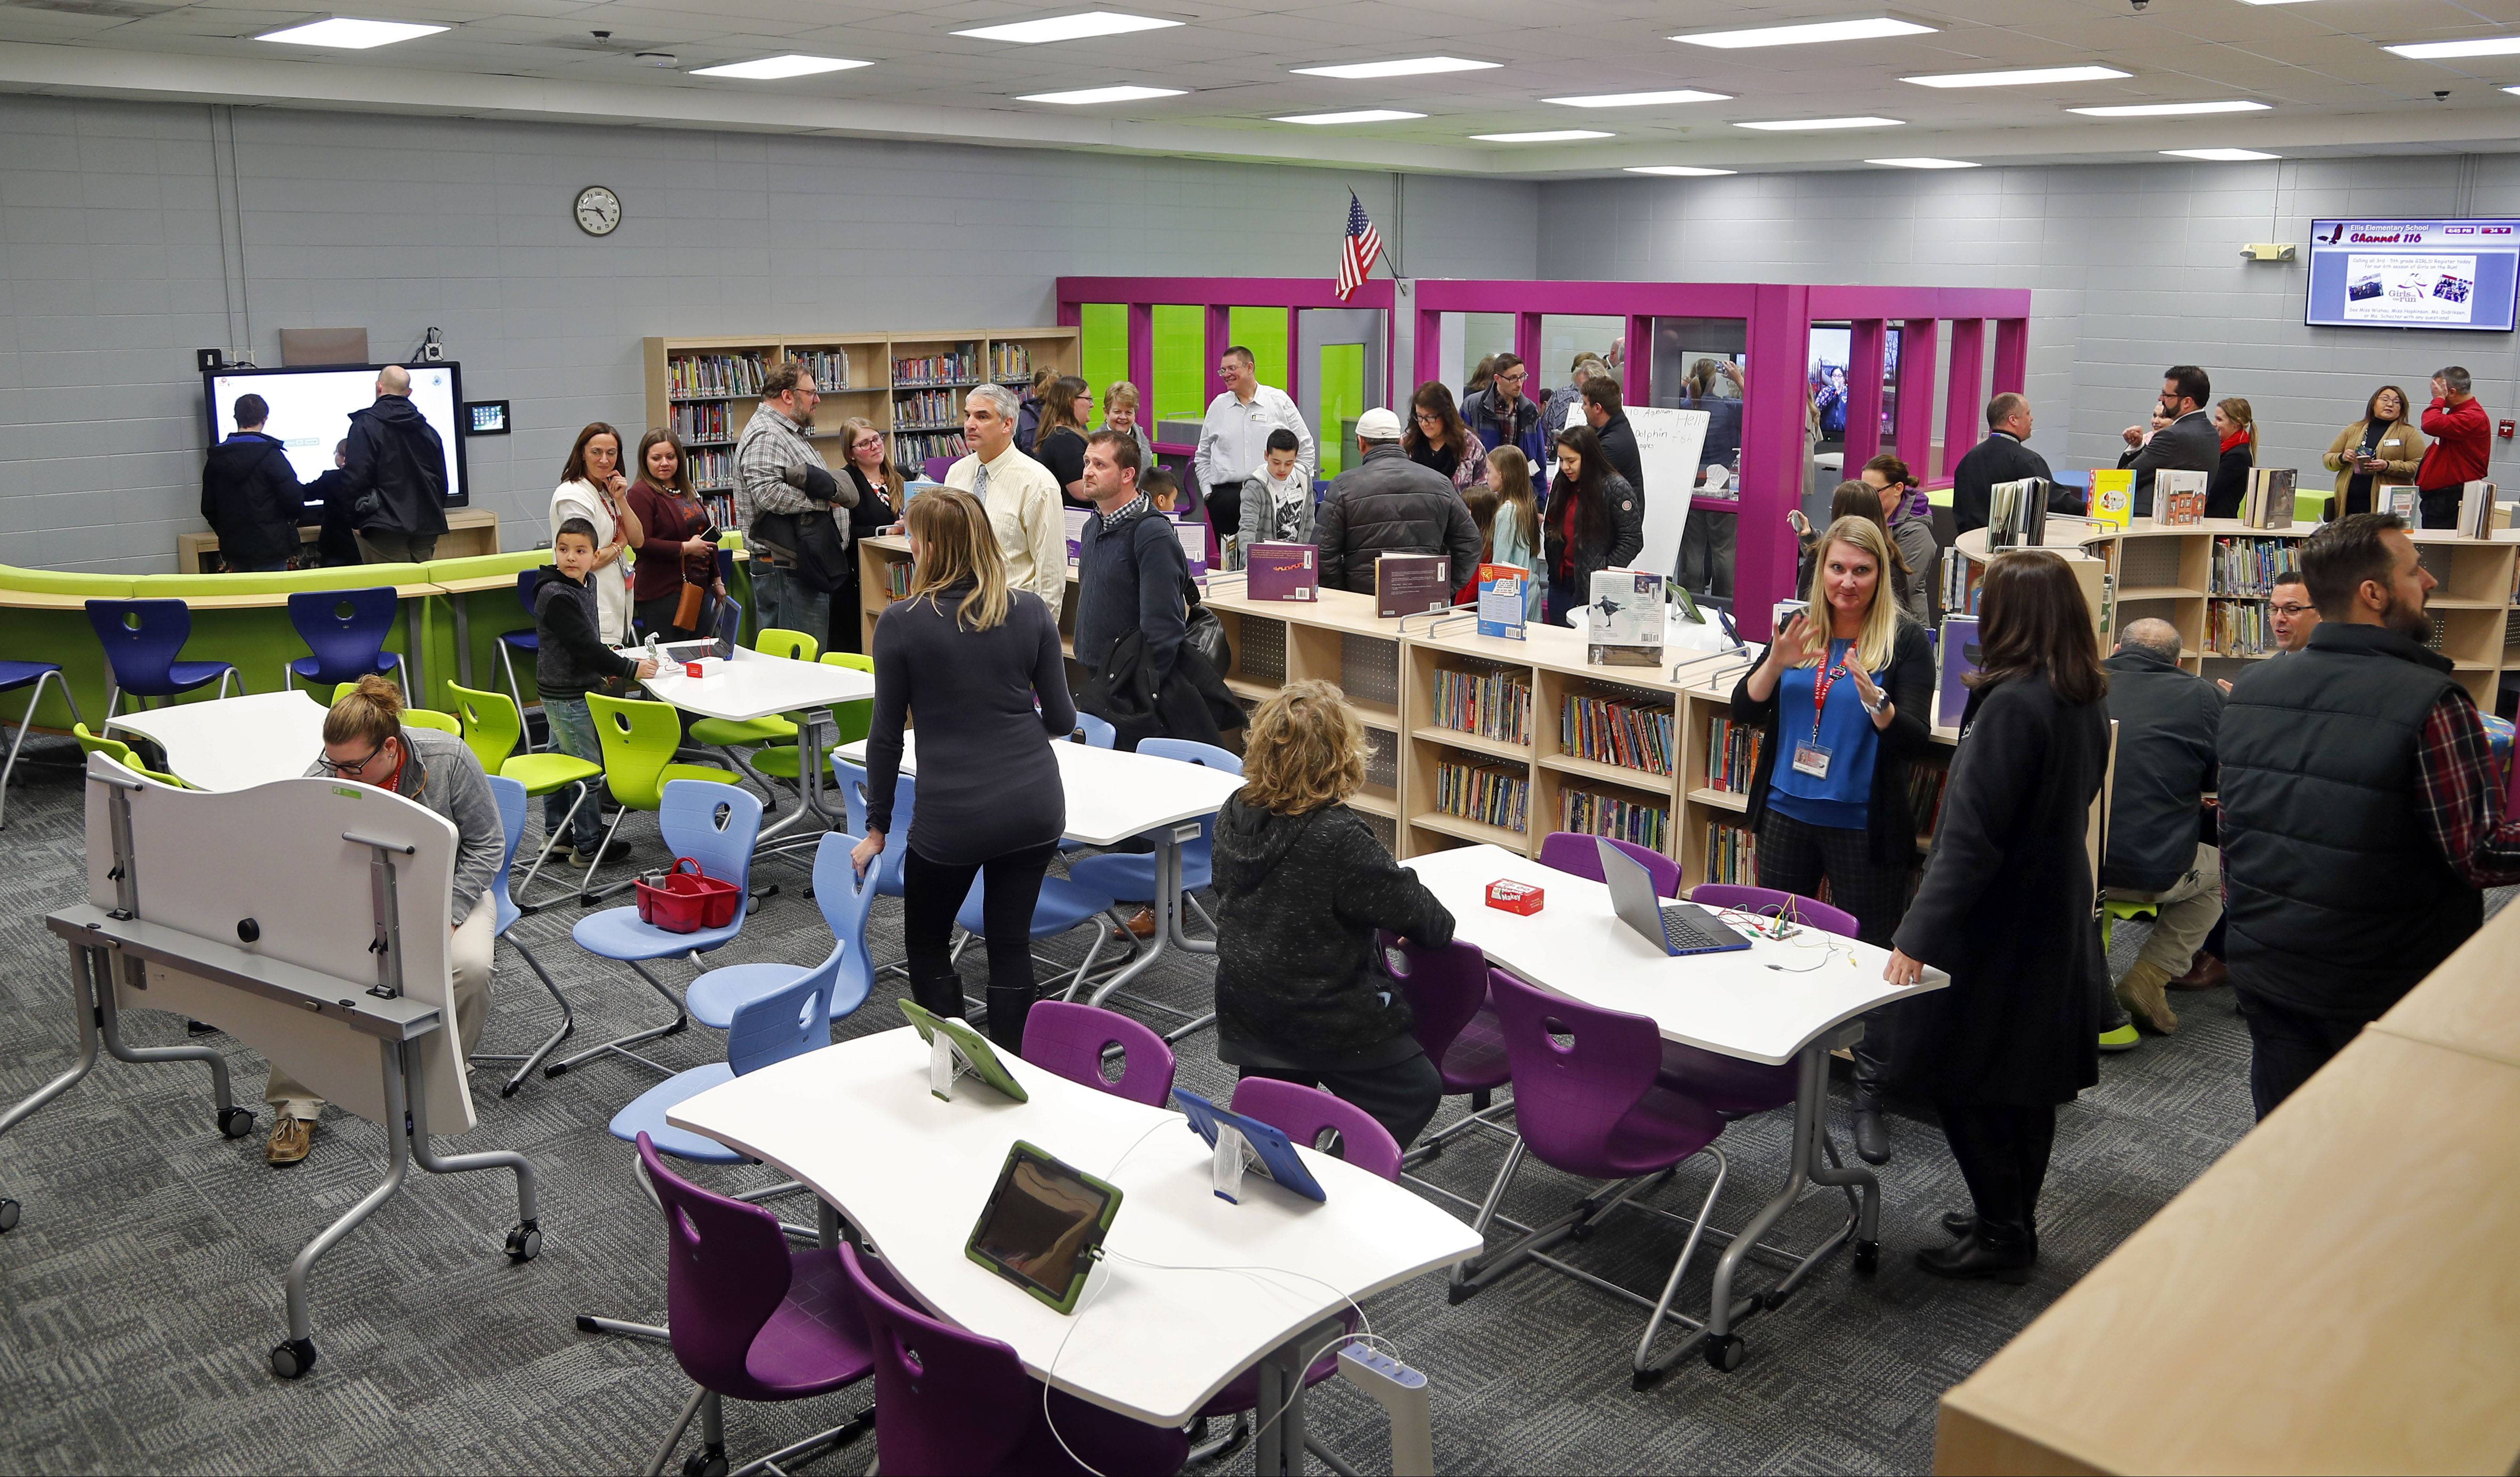 Steve Lundy/slundy@dailyherald.comEllis Elementary School celebrated their new Limitless Learning Commons Tuesday in Round Lake Beach. The school received a new modern library after their old one was destroyed in the July 2017 flood.